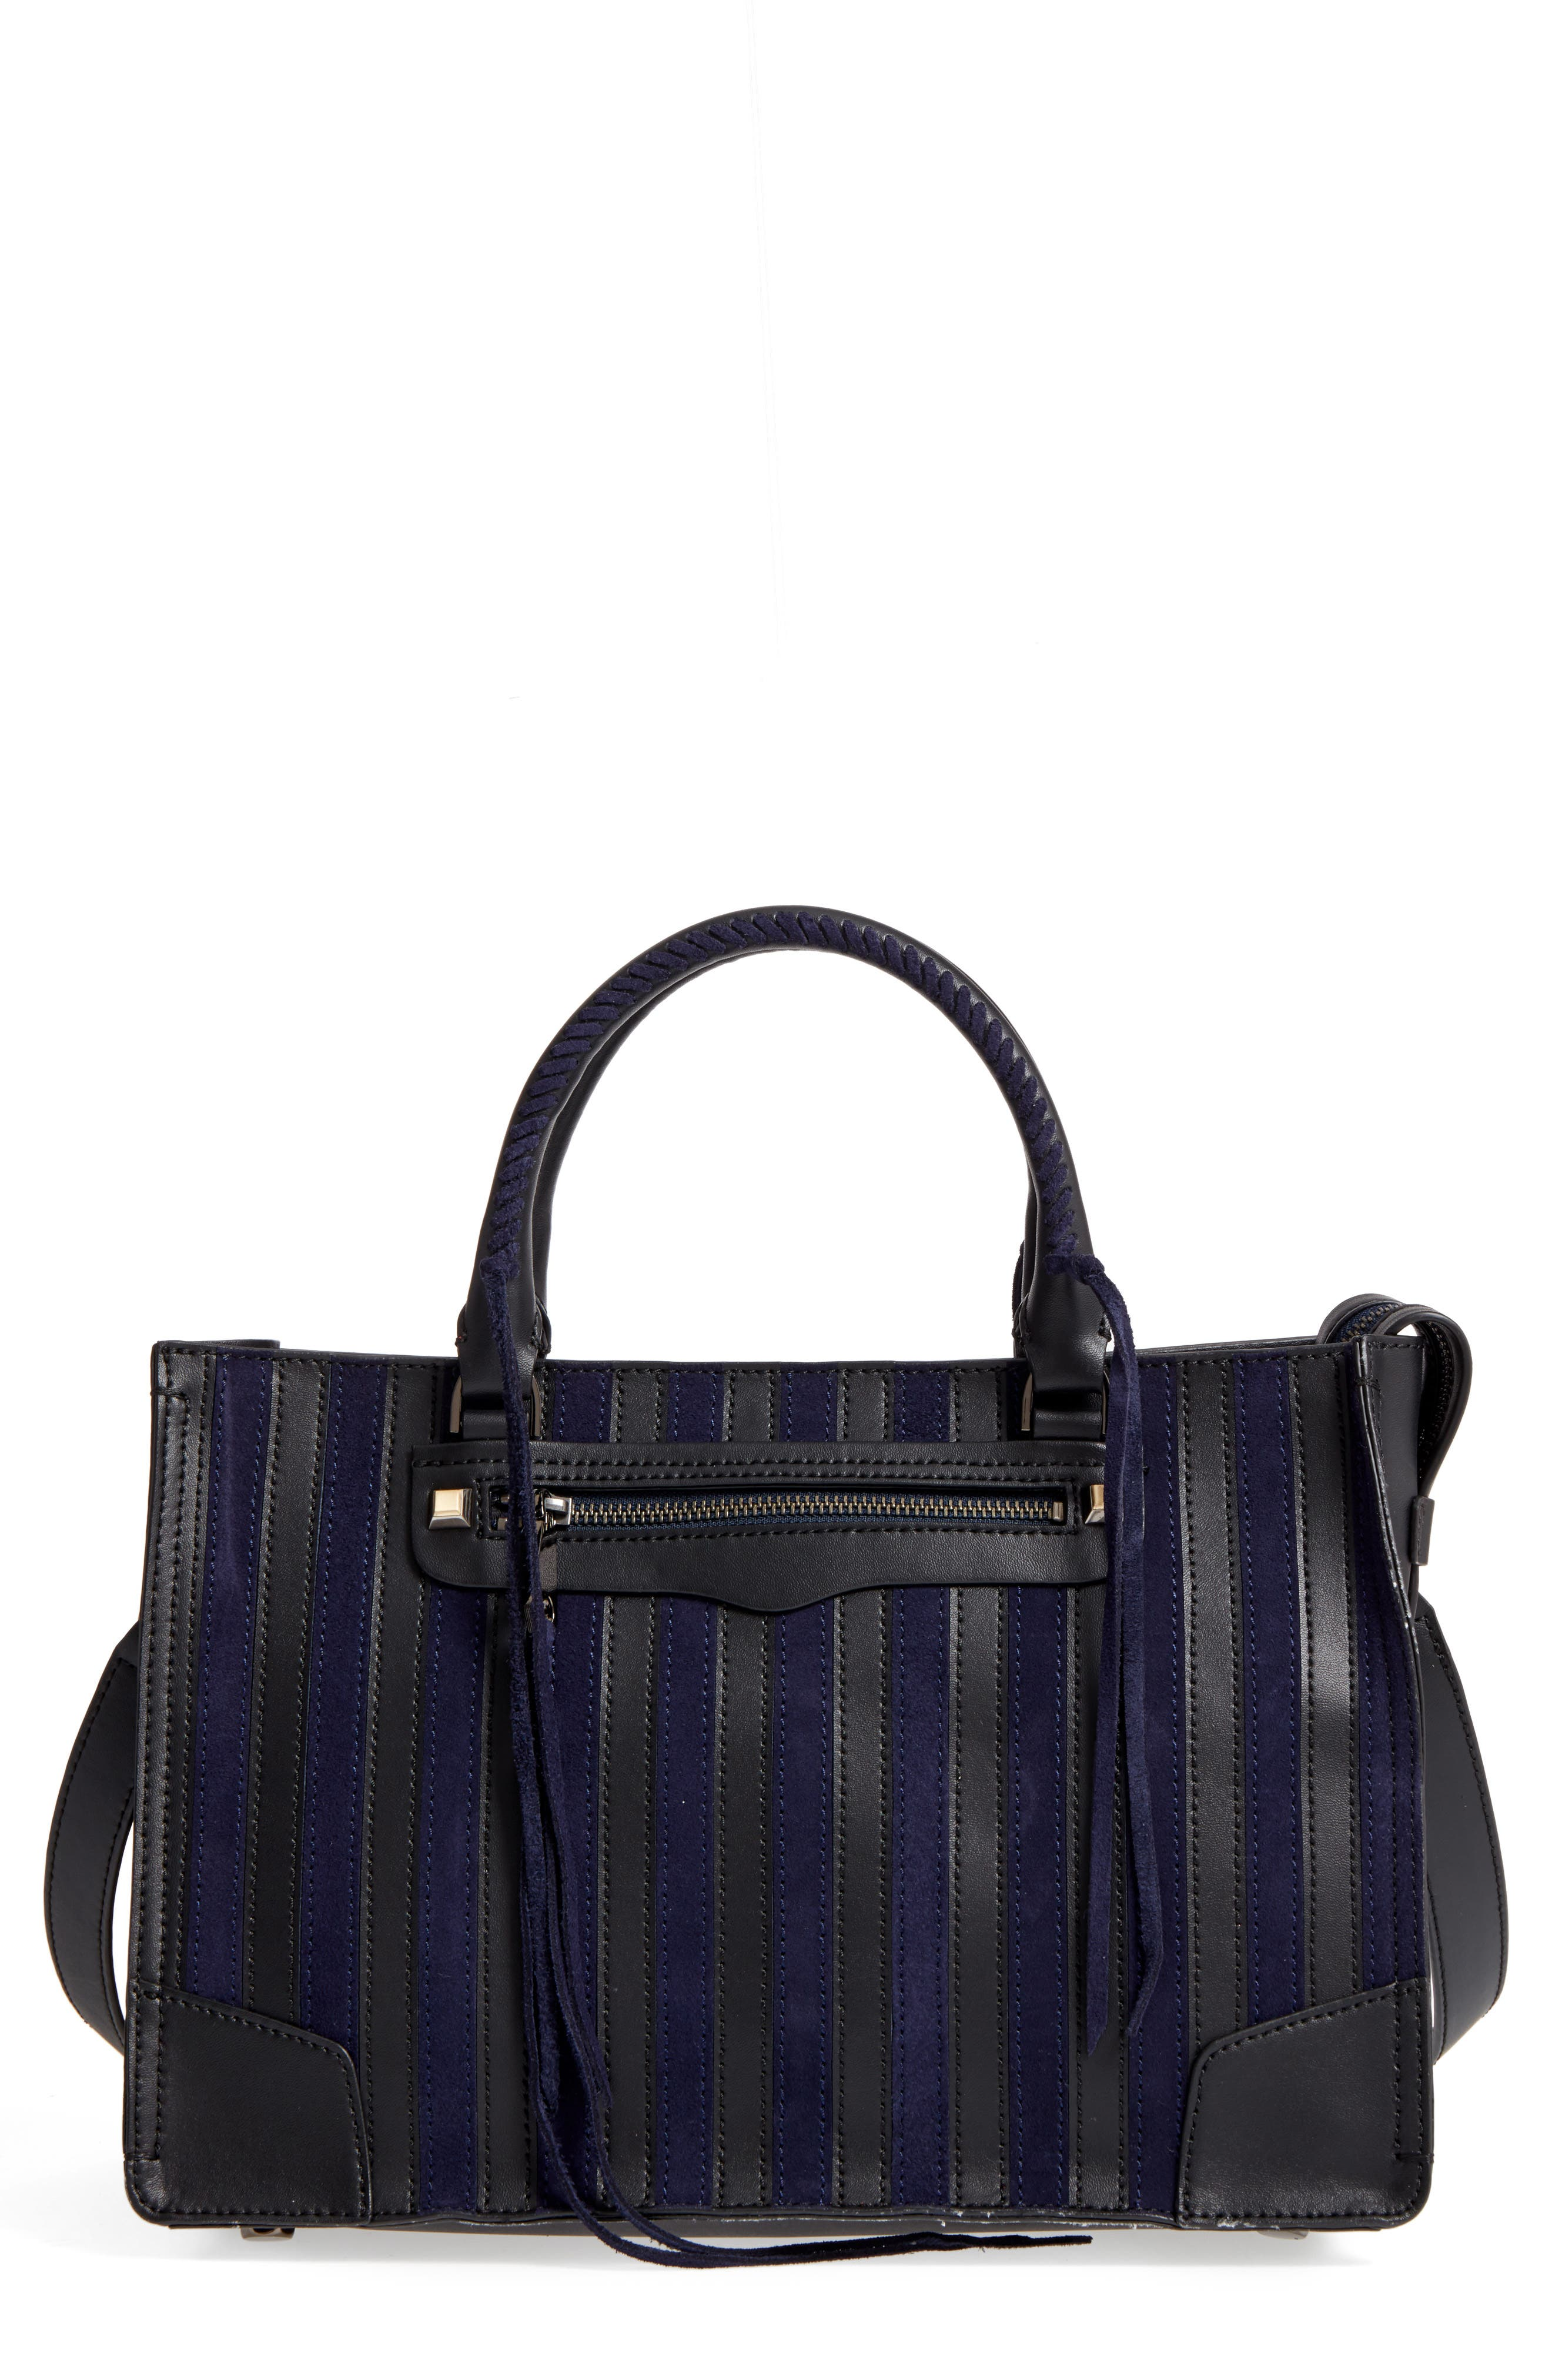 Rebecca Minkoff Regan Stripe Leather & Suede Top Handle Satchel